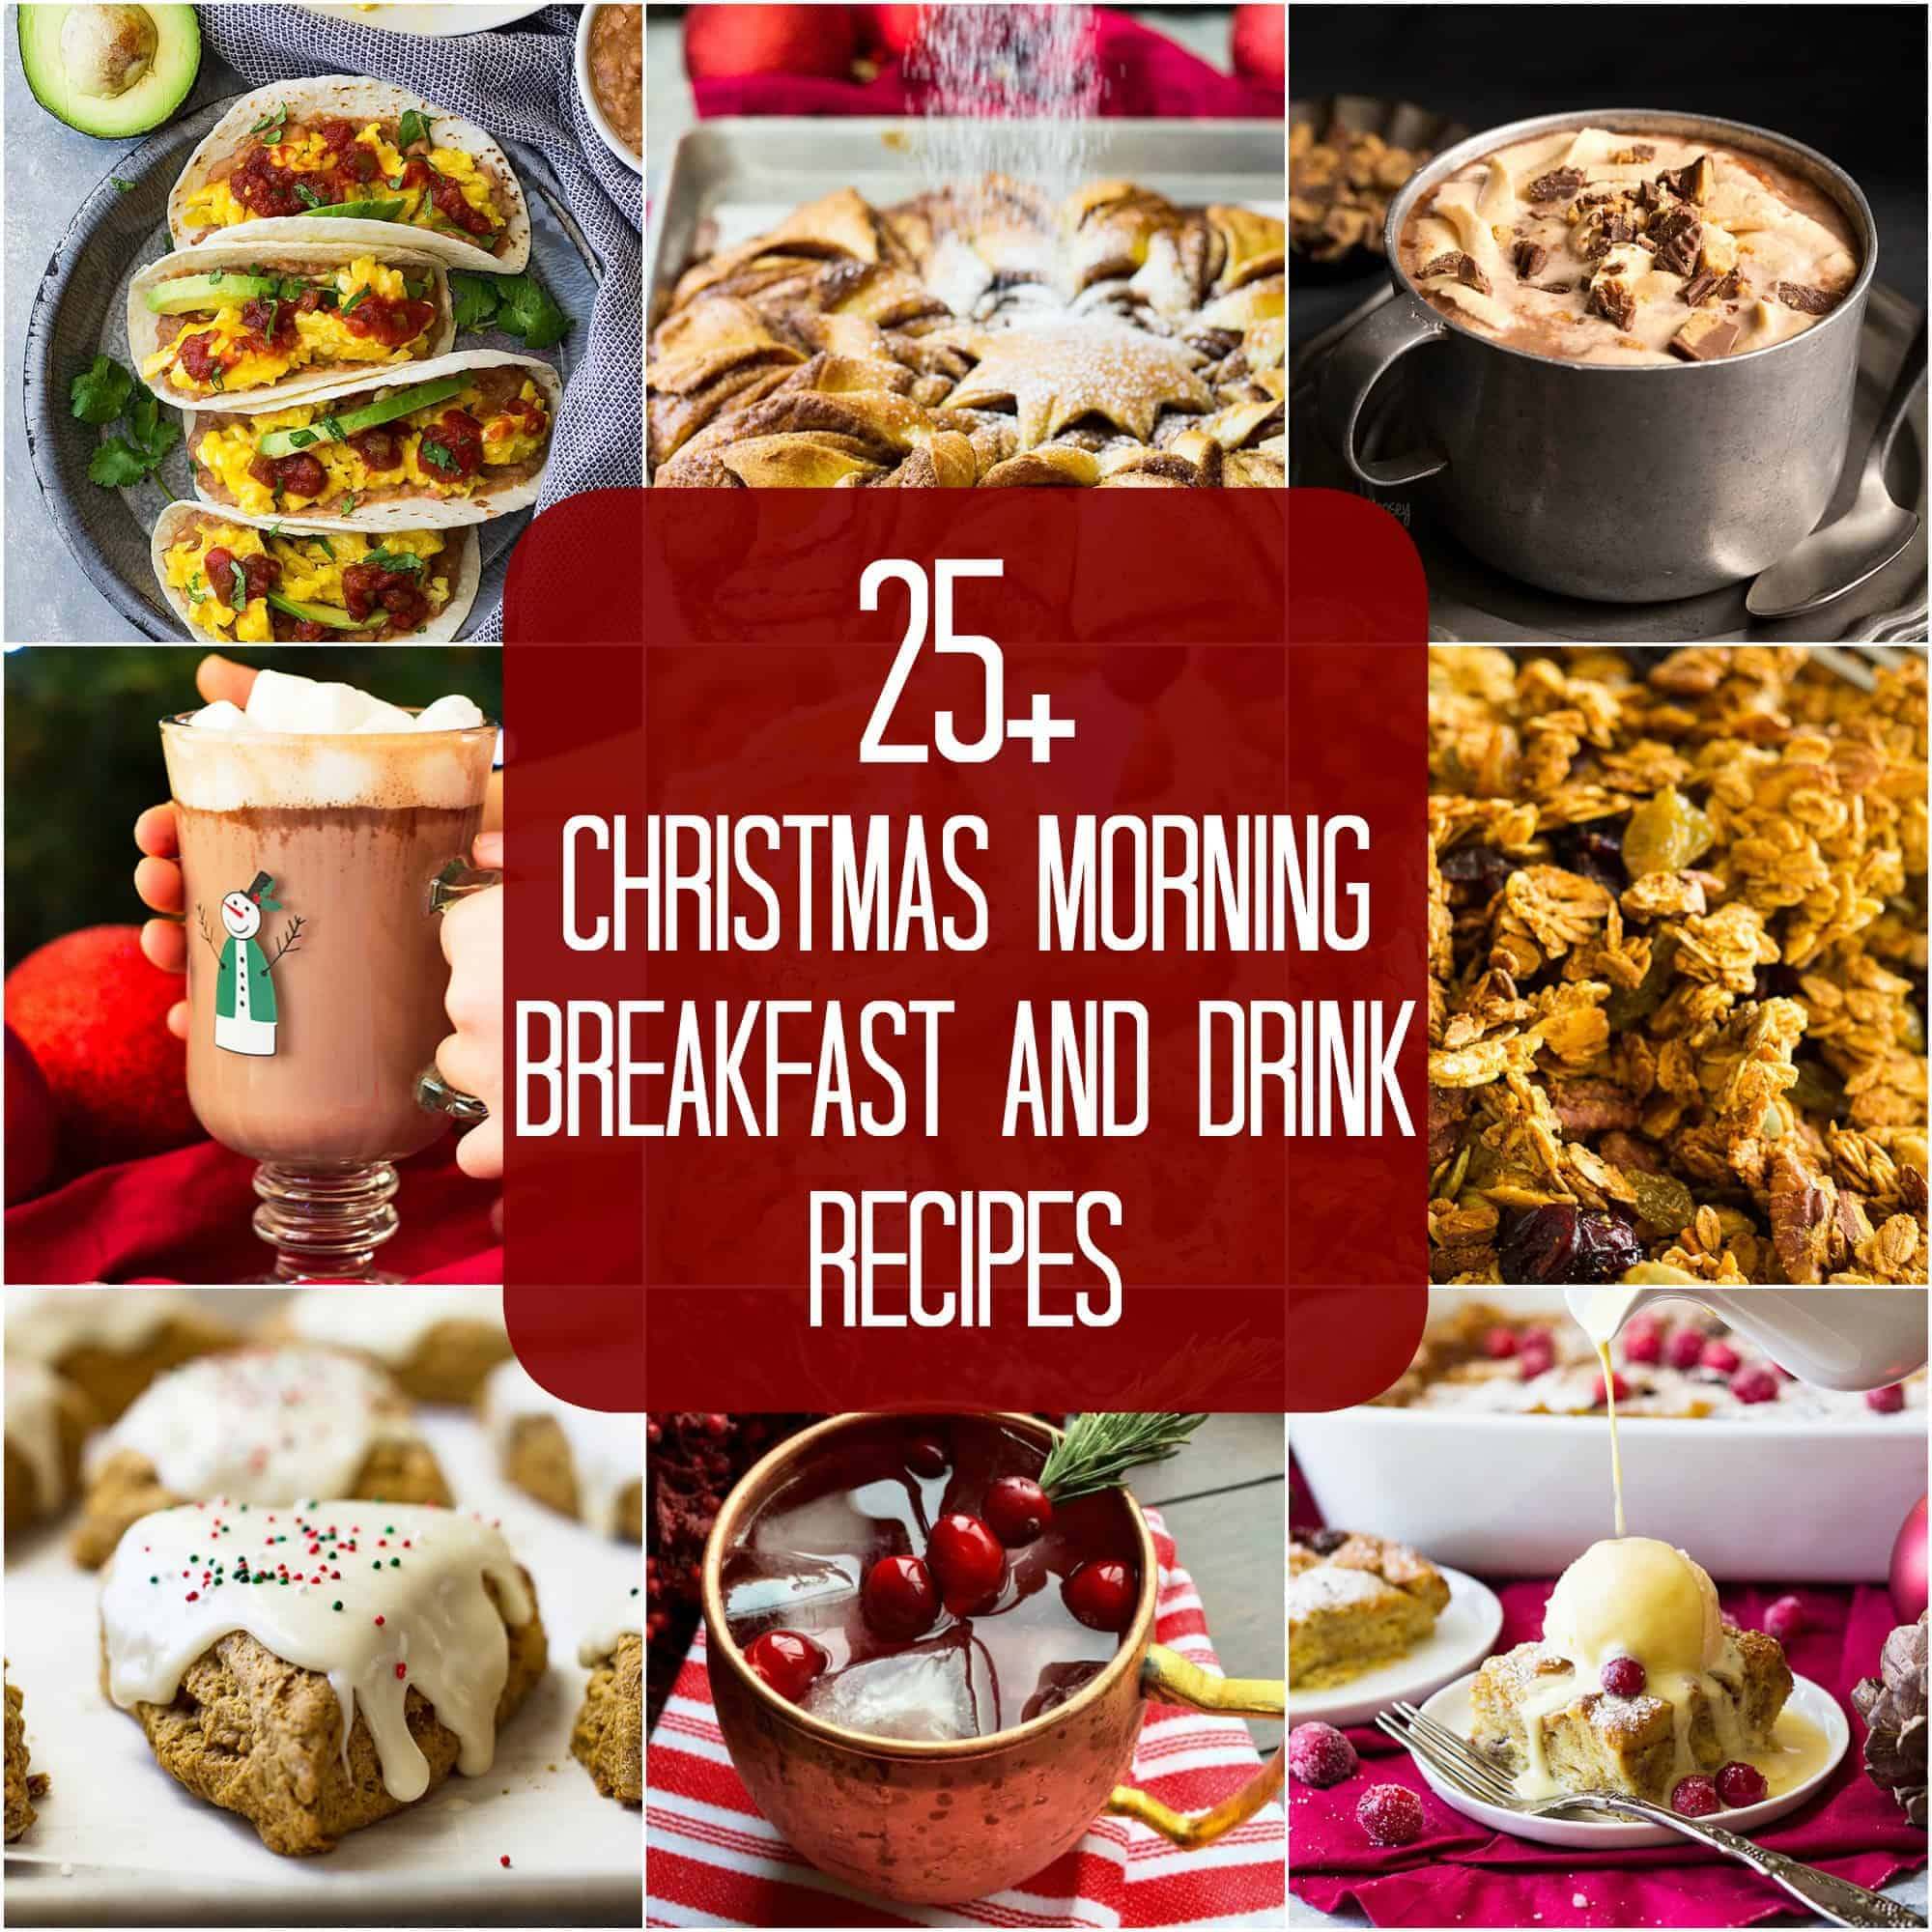 These 25+ Christmas Morning Breakfast and Drink Recipes will make your Christmas morning a little extra special!!  There are loads of drinks, sweet, and savory recipes to choose from.